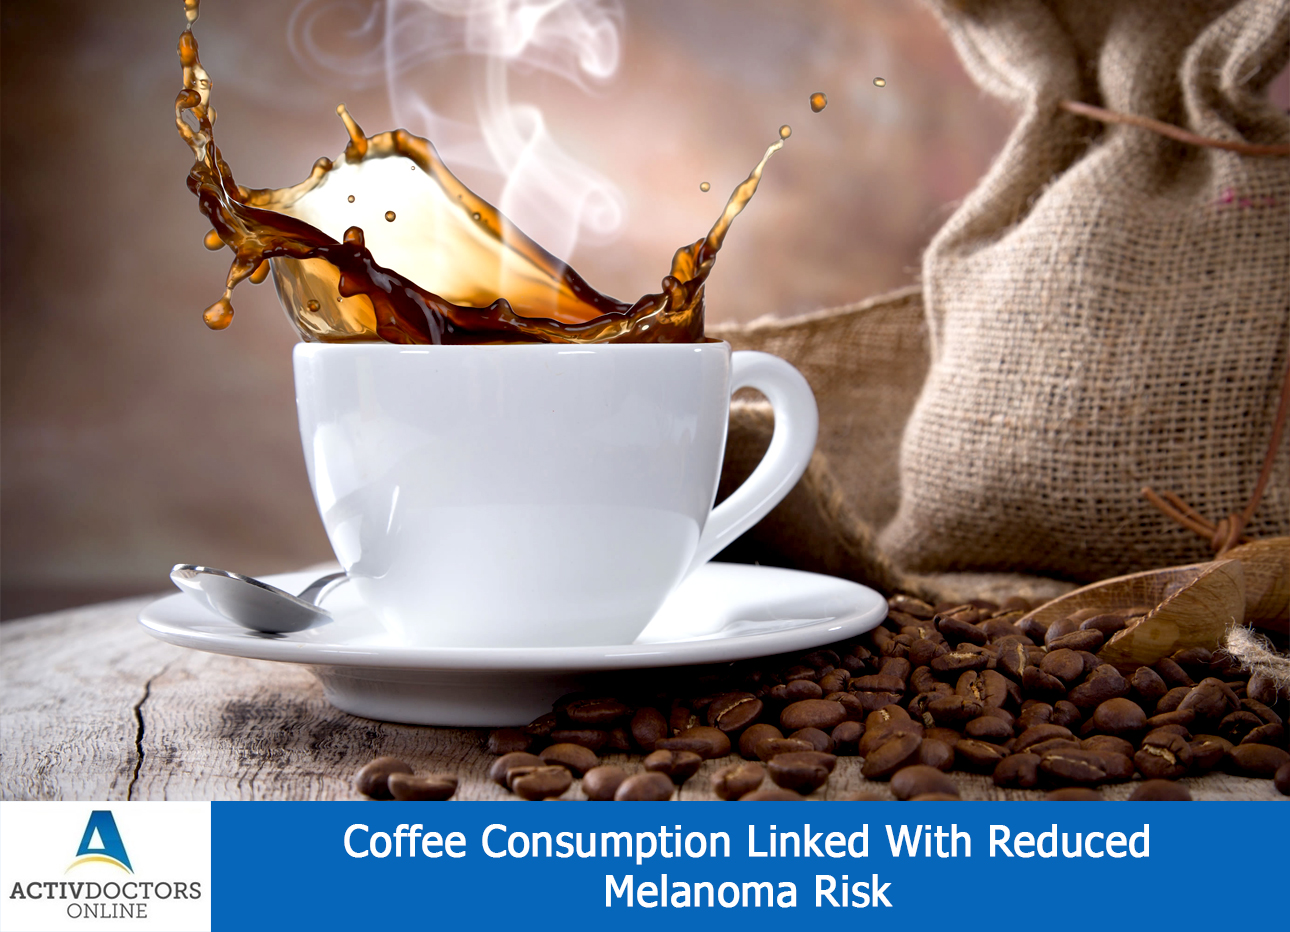 Coffee Consumption Linked With Reduced Melanoma Risk